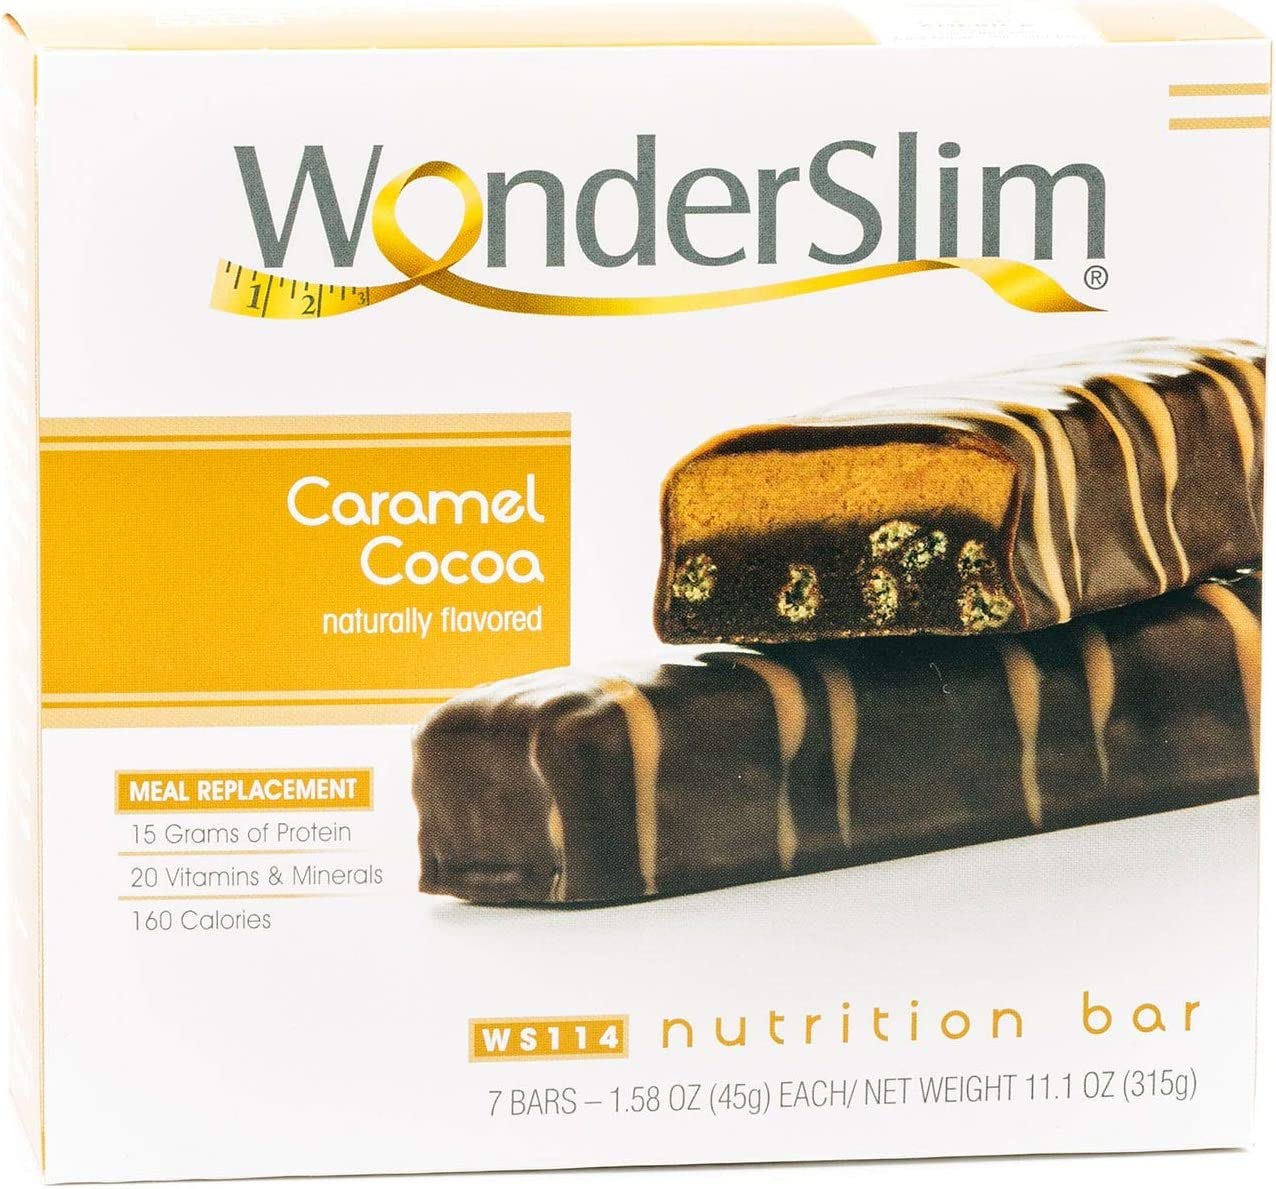 WonderSlim Meal Replacement Protein Bar – Low Carb Nutrition Bar for Women Men – Caramel Cocoa – High Fiber, Keto Friendly, Gluten Free, Weight Loss Diet Snack Bar 7ct